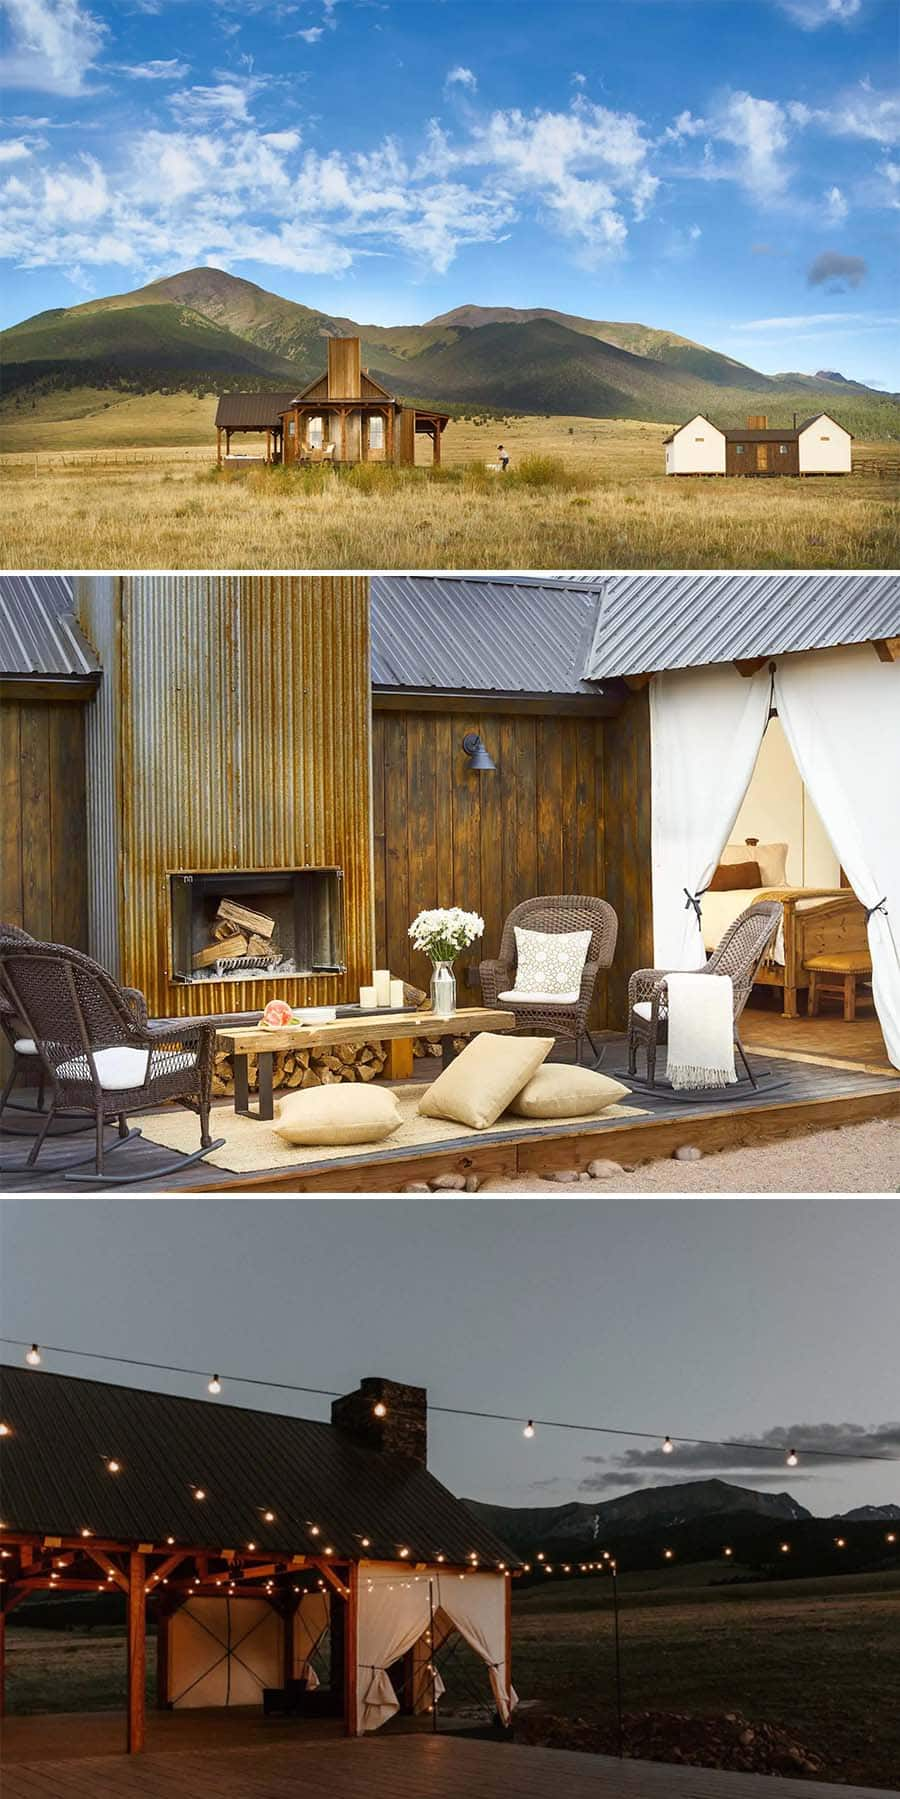 Modern farmhouse cabin Airbnbs in Westcliffe, Colorado at the base of the mountains